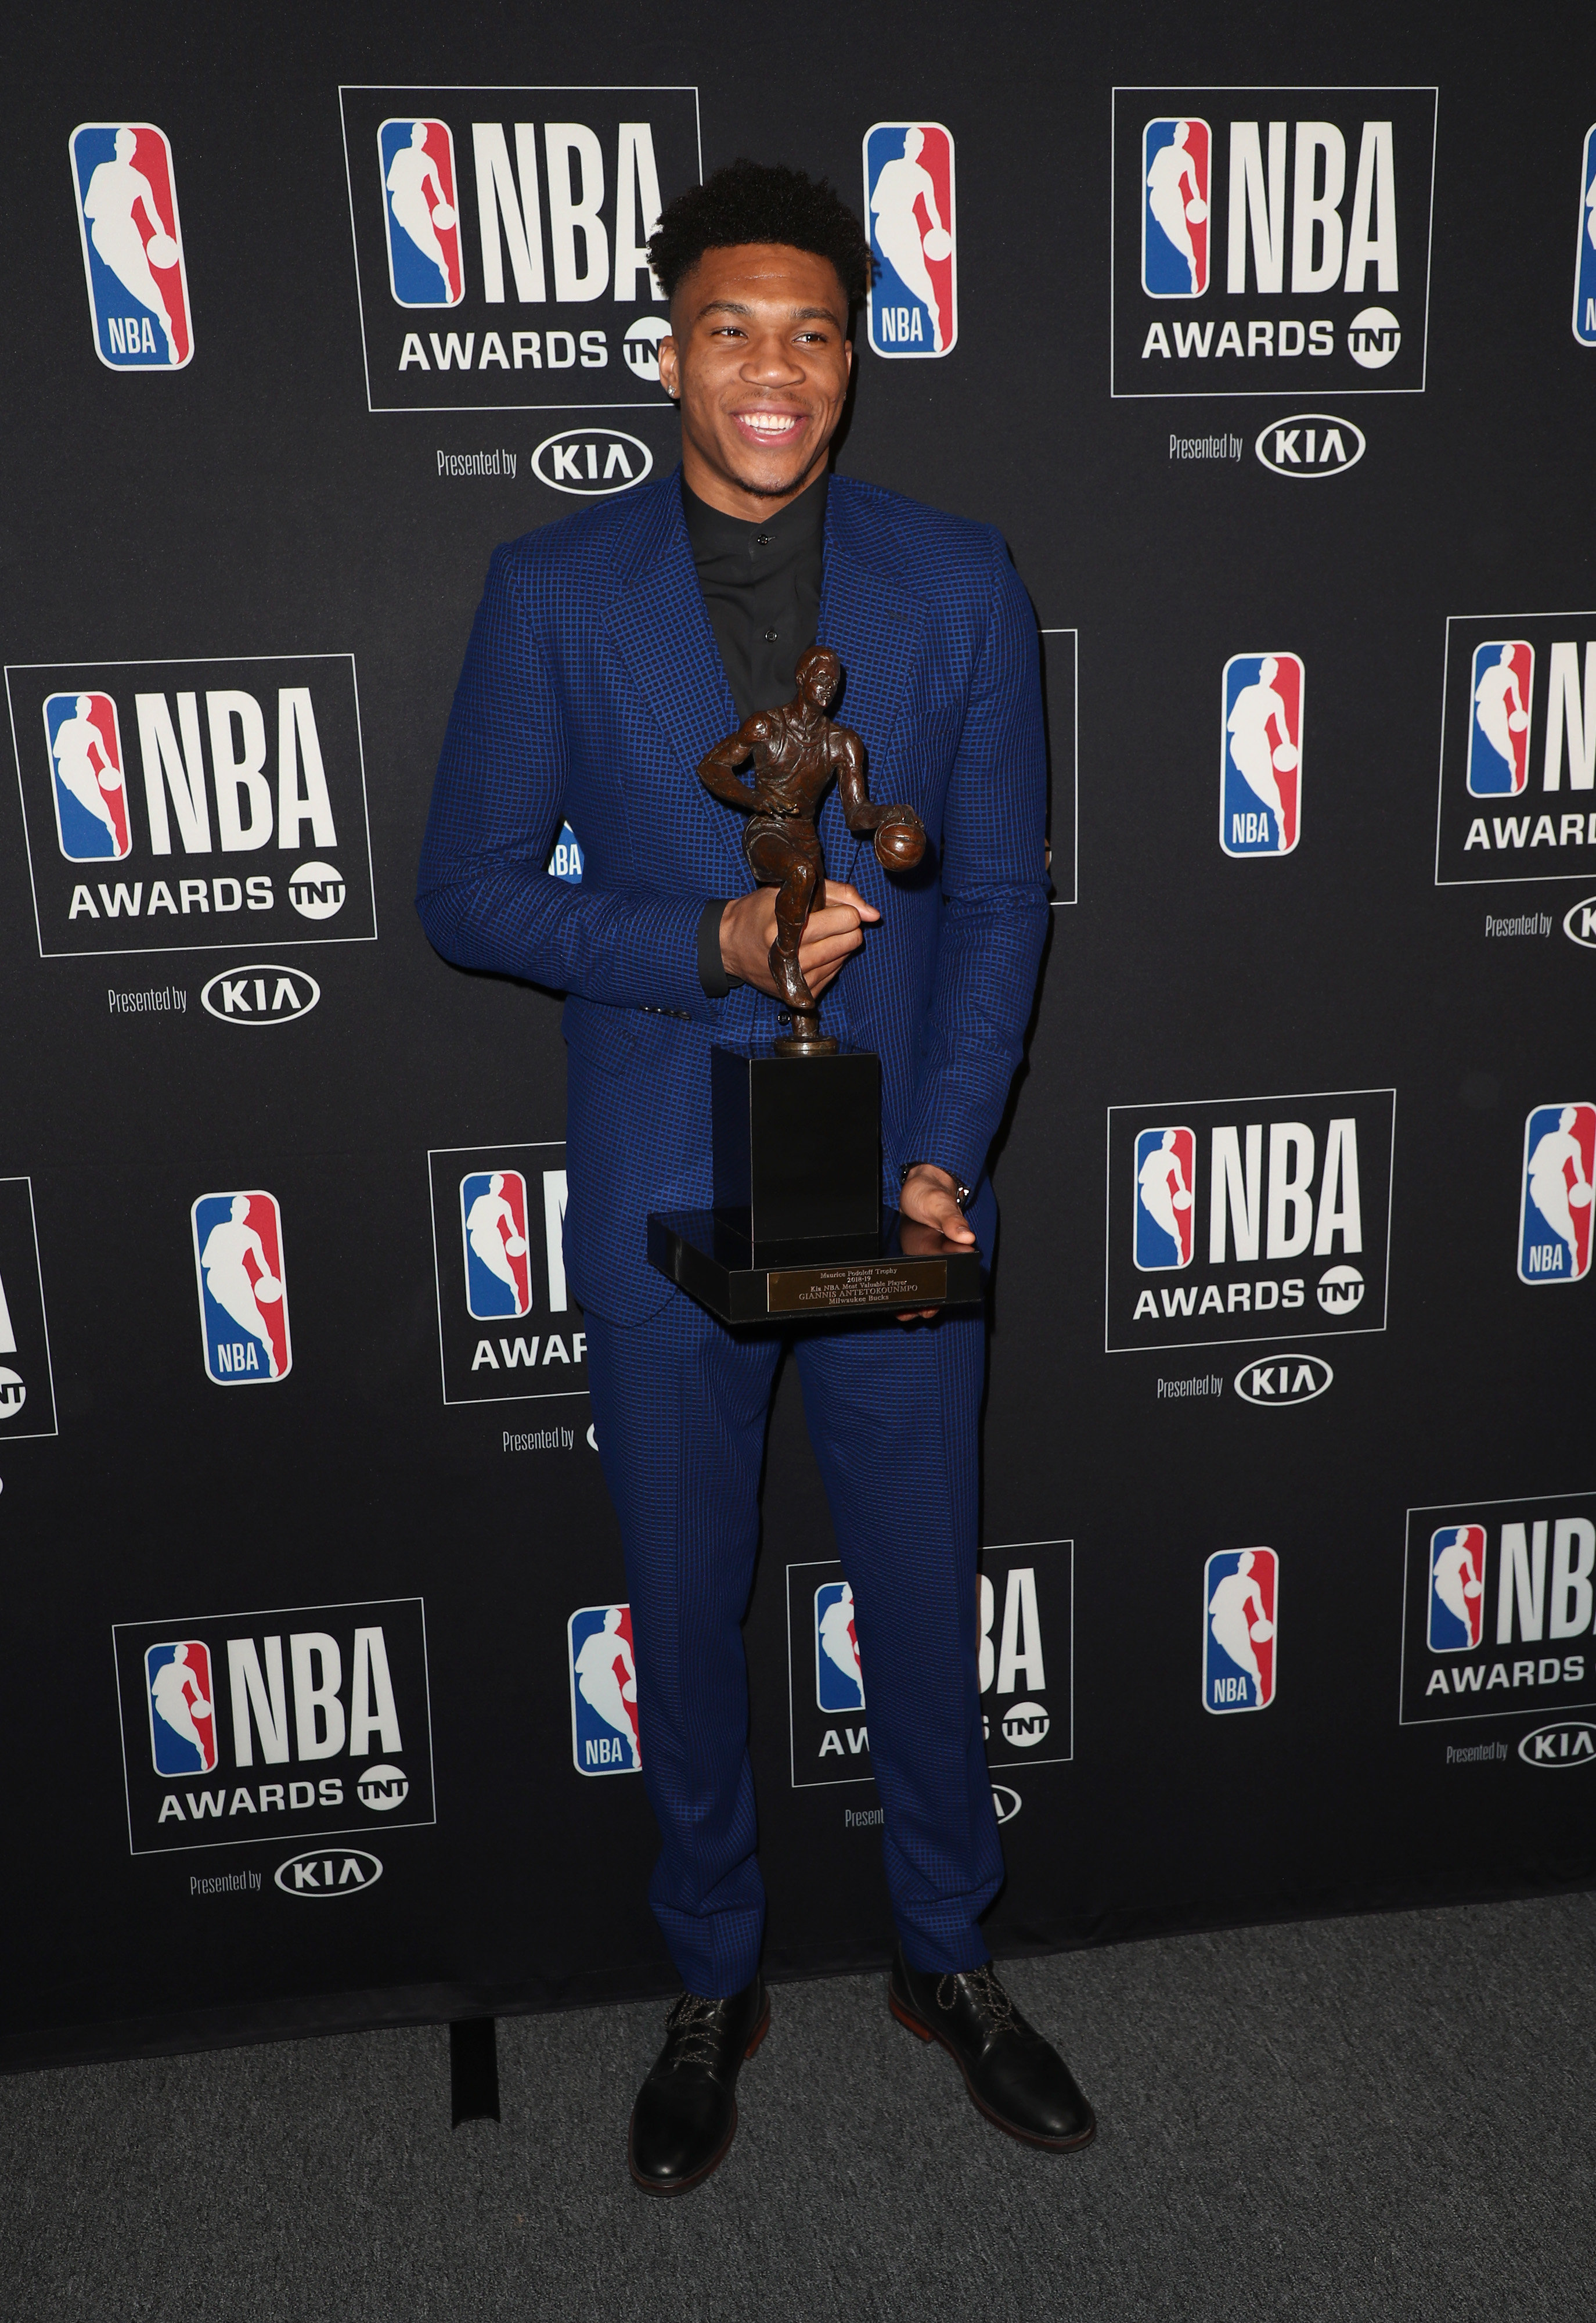 Giannis Antetokounmpo Named Most Valuable Player At 2019 Nba Awards Verge Hub